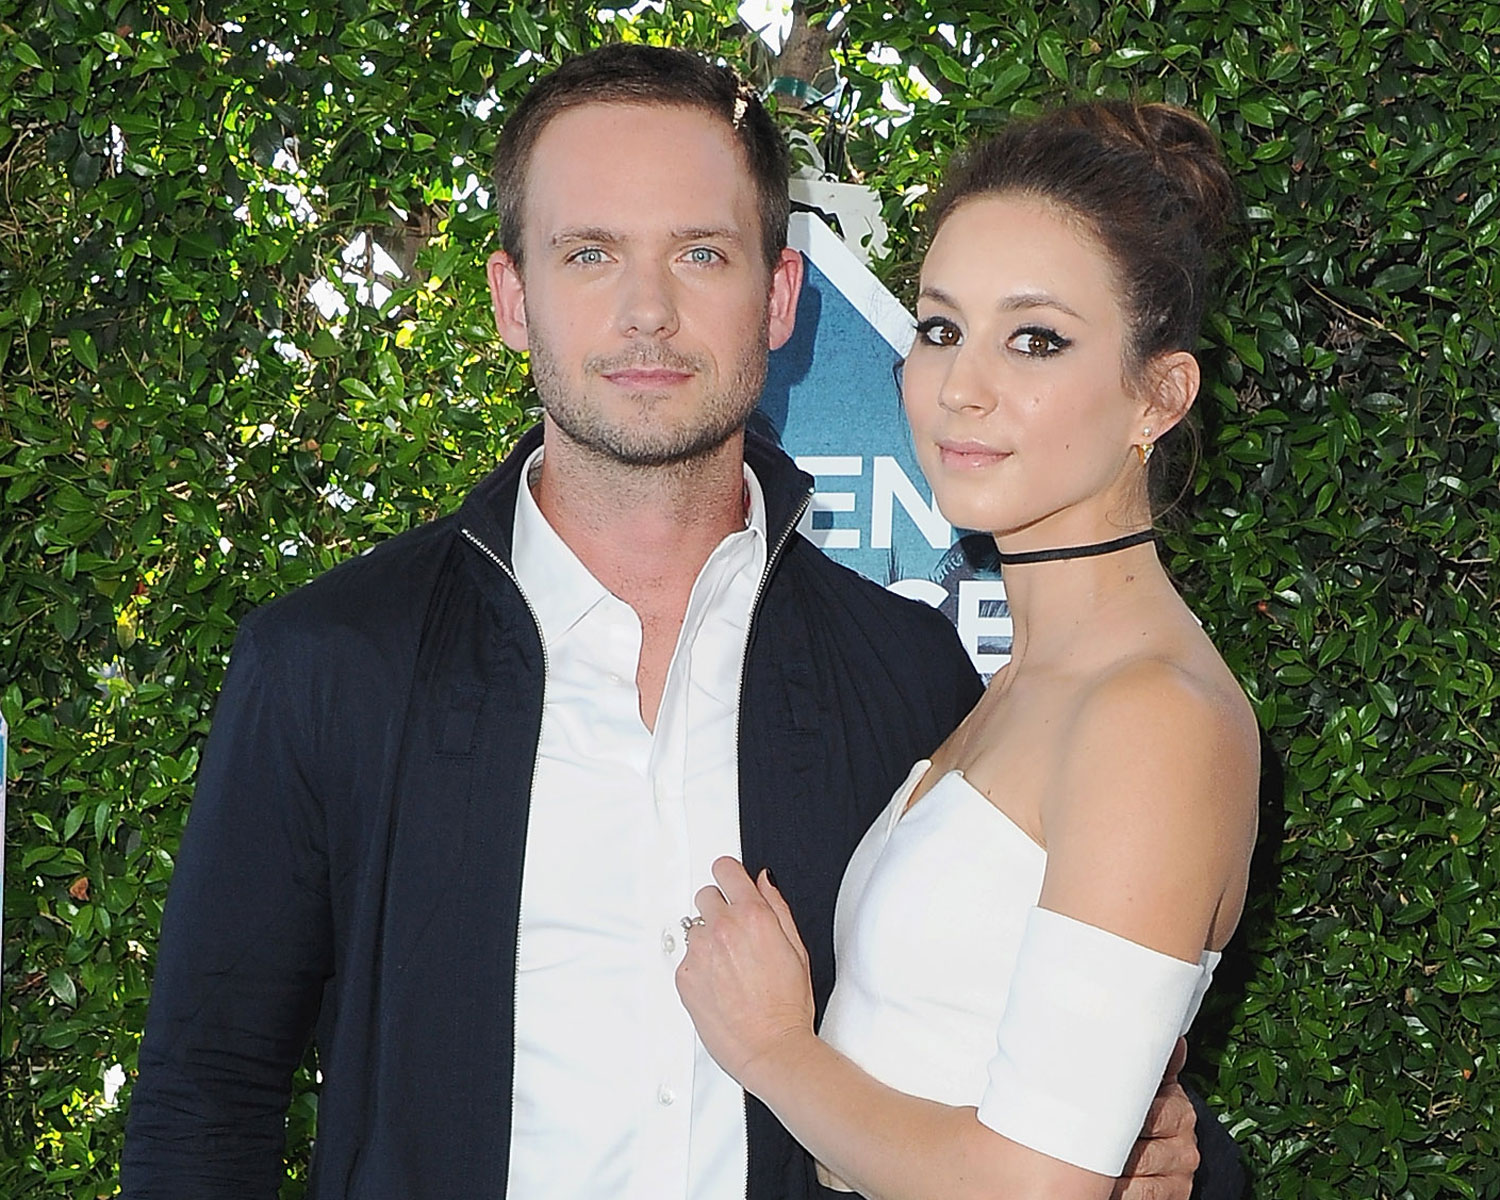 Troian Bellisario And Patrick J Adams Camping Themed